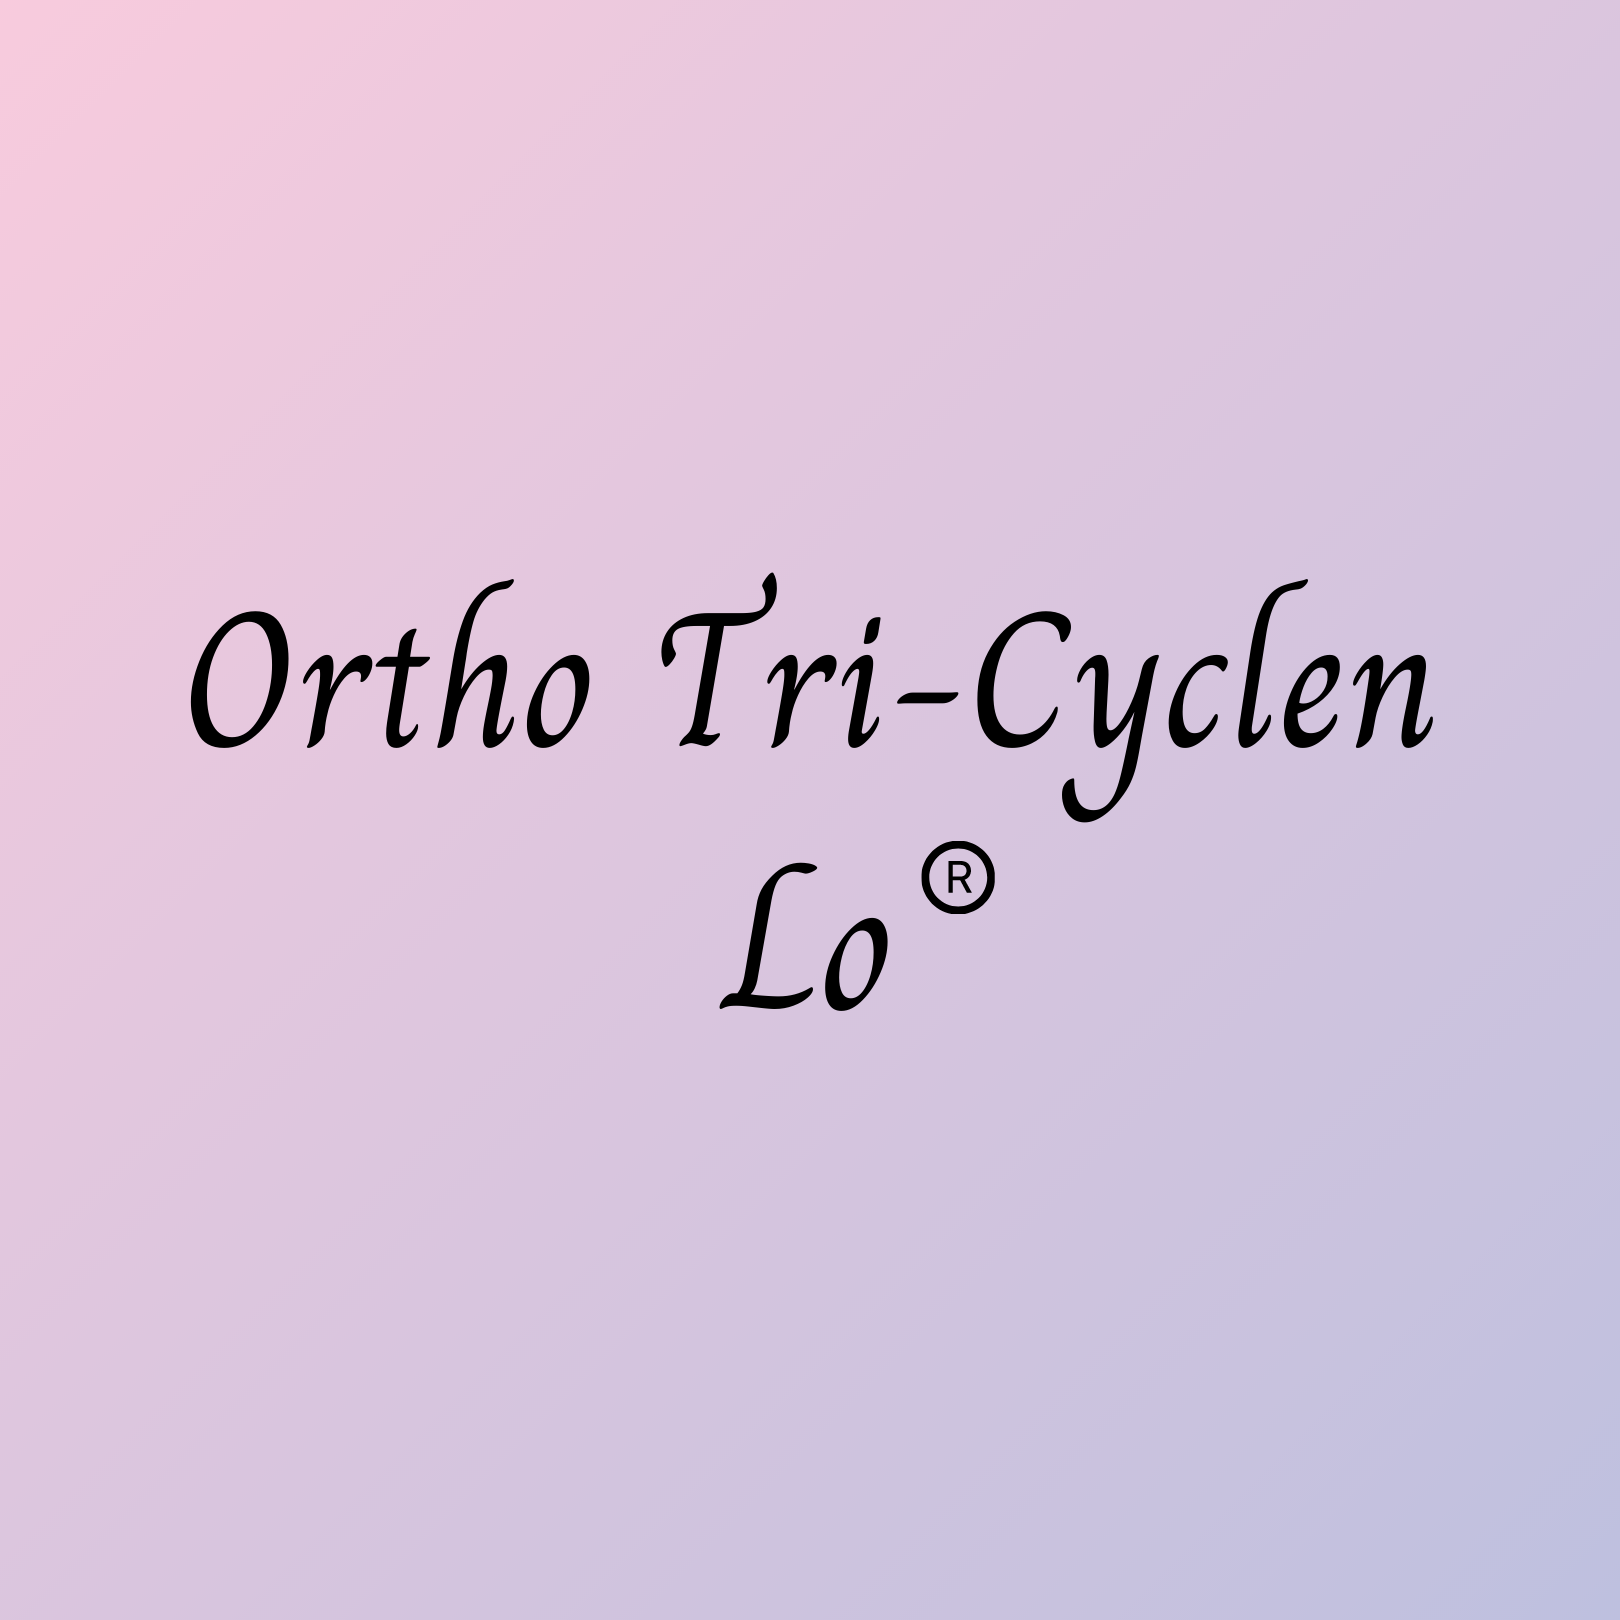 Buy Ortho Tri Cyclen Lo online birth control at hellowisp.com